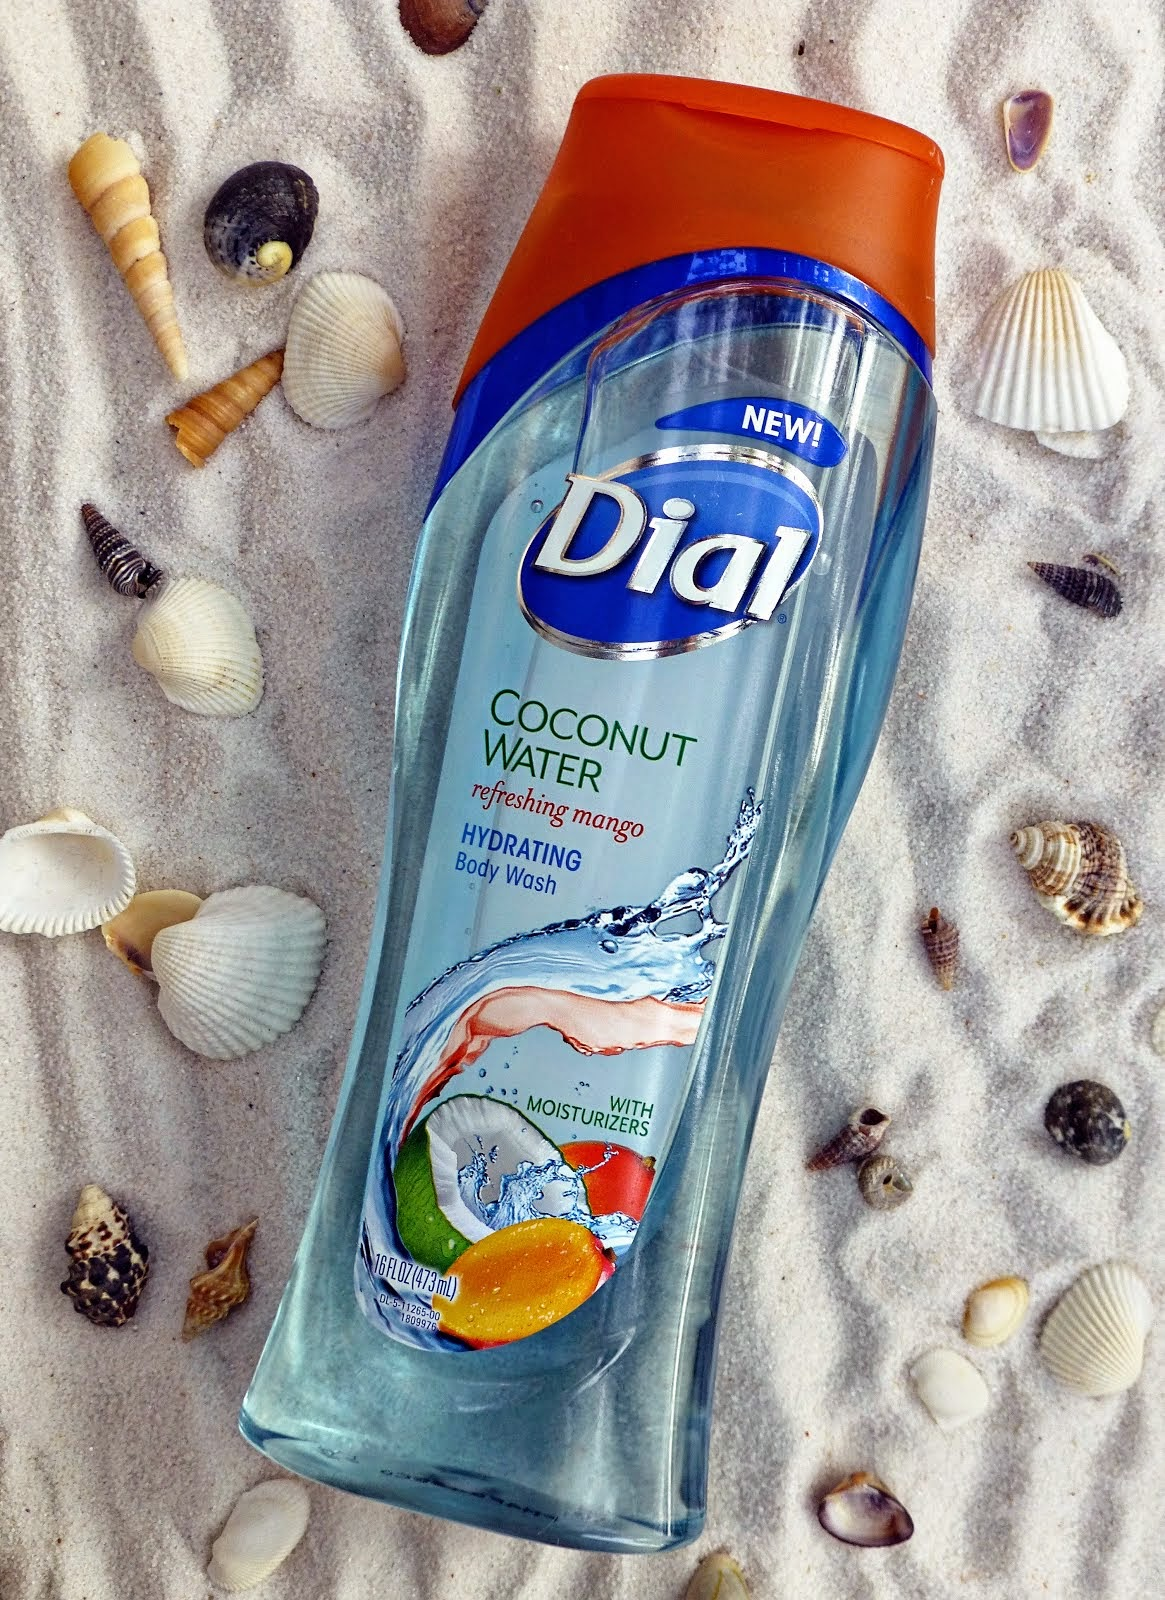 Enter To Win Dial Coconut Water Body Wash